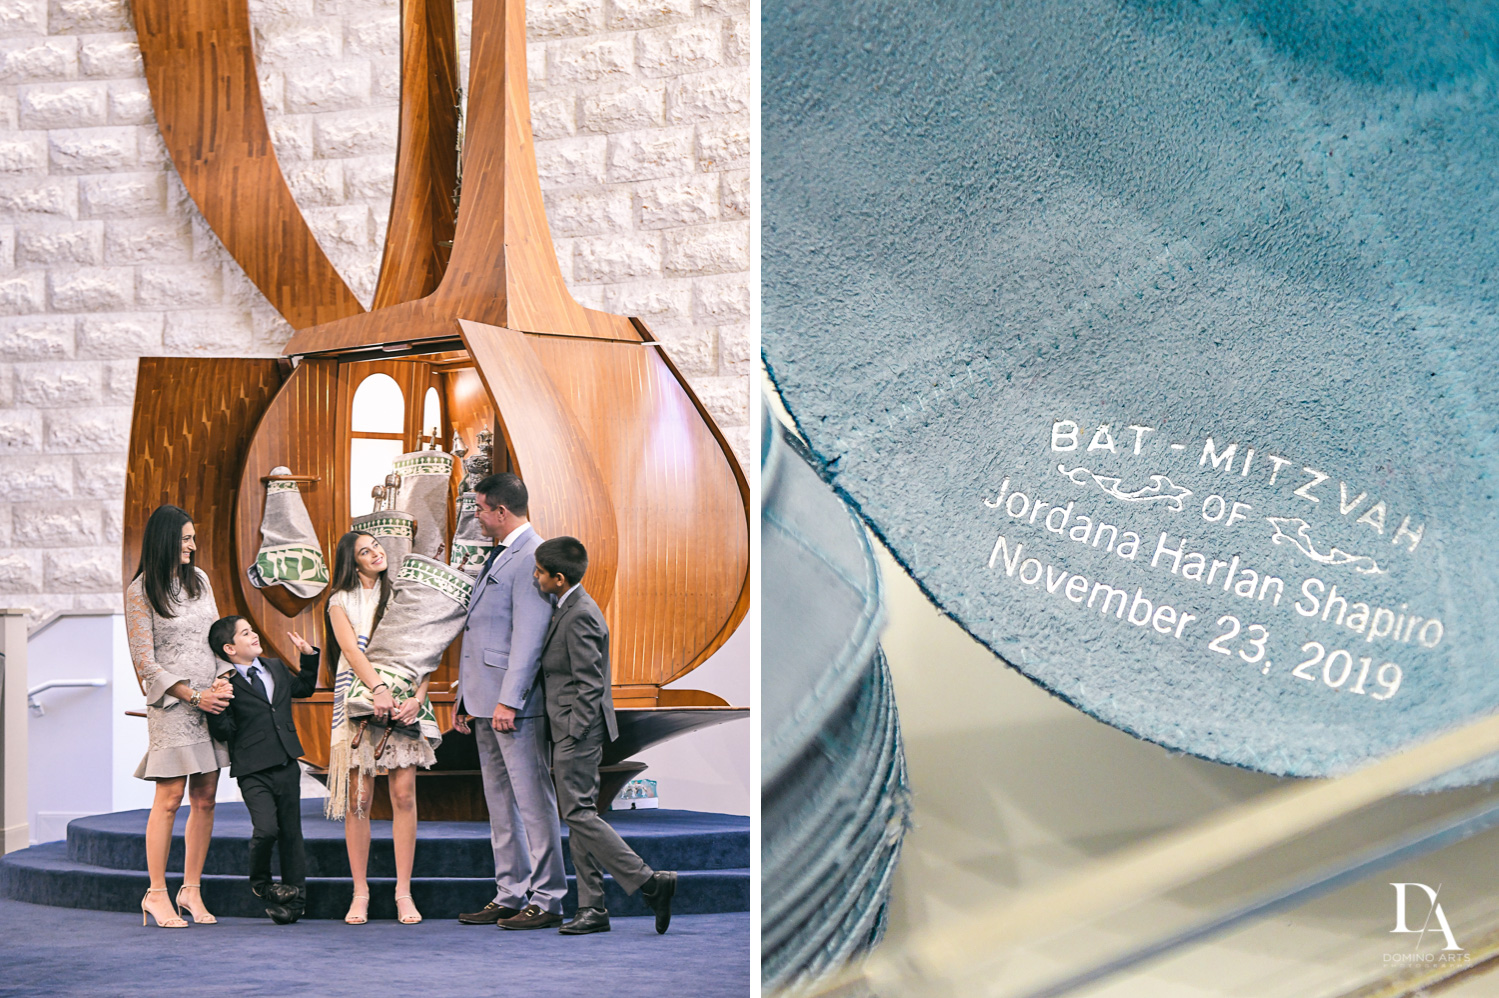 custom kippot for Traditional Jewish Bat Mitzvah at Temple Beth El by Domino Arts Photography